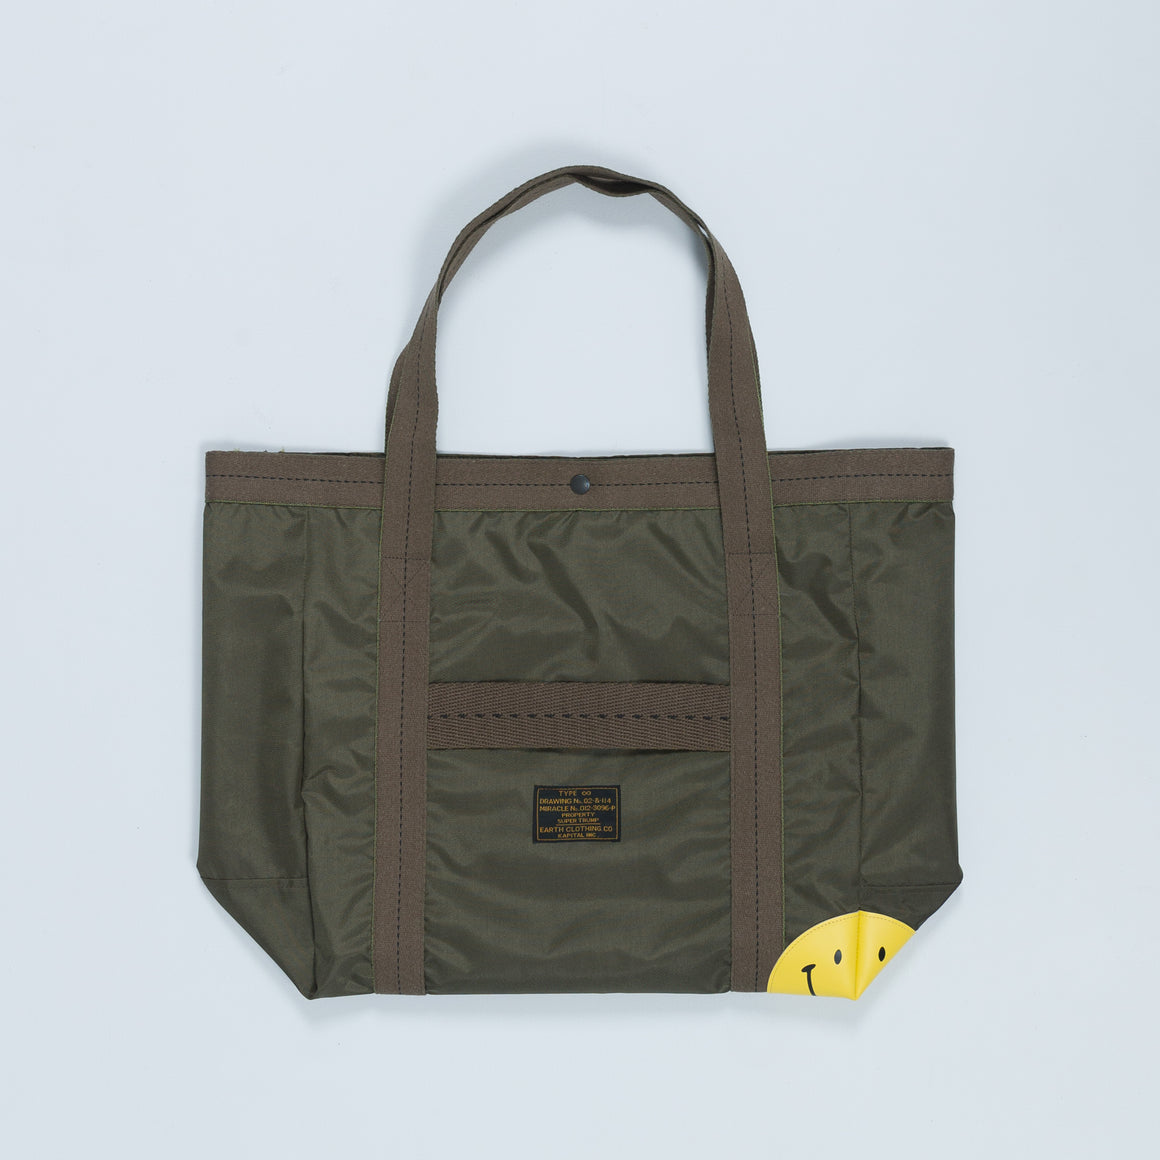 Nylon Army Smile Tote Bag - Large - Up There